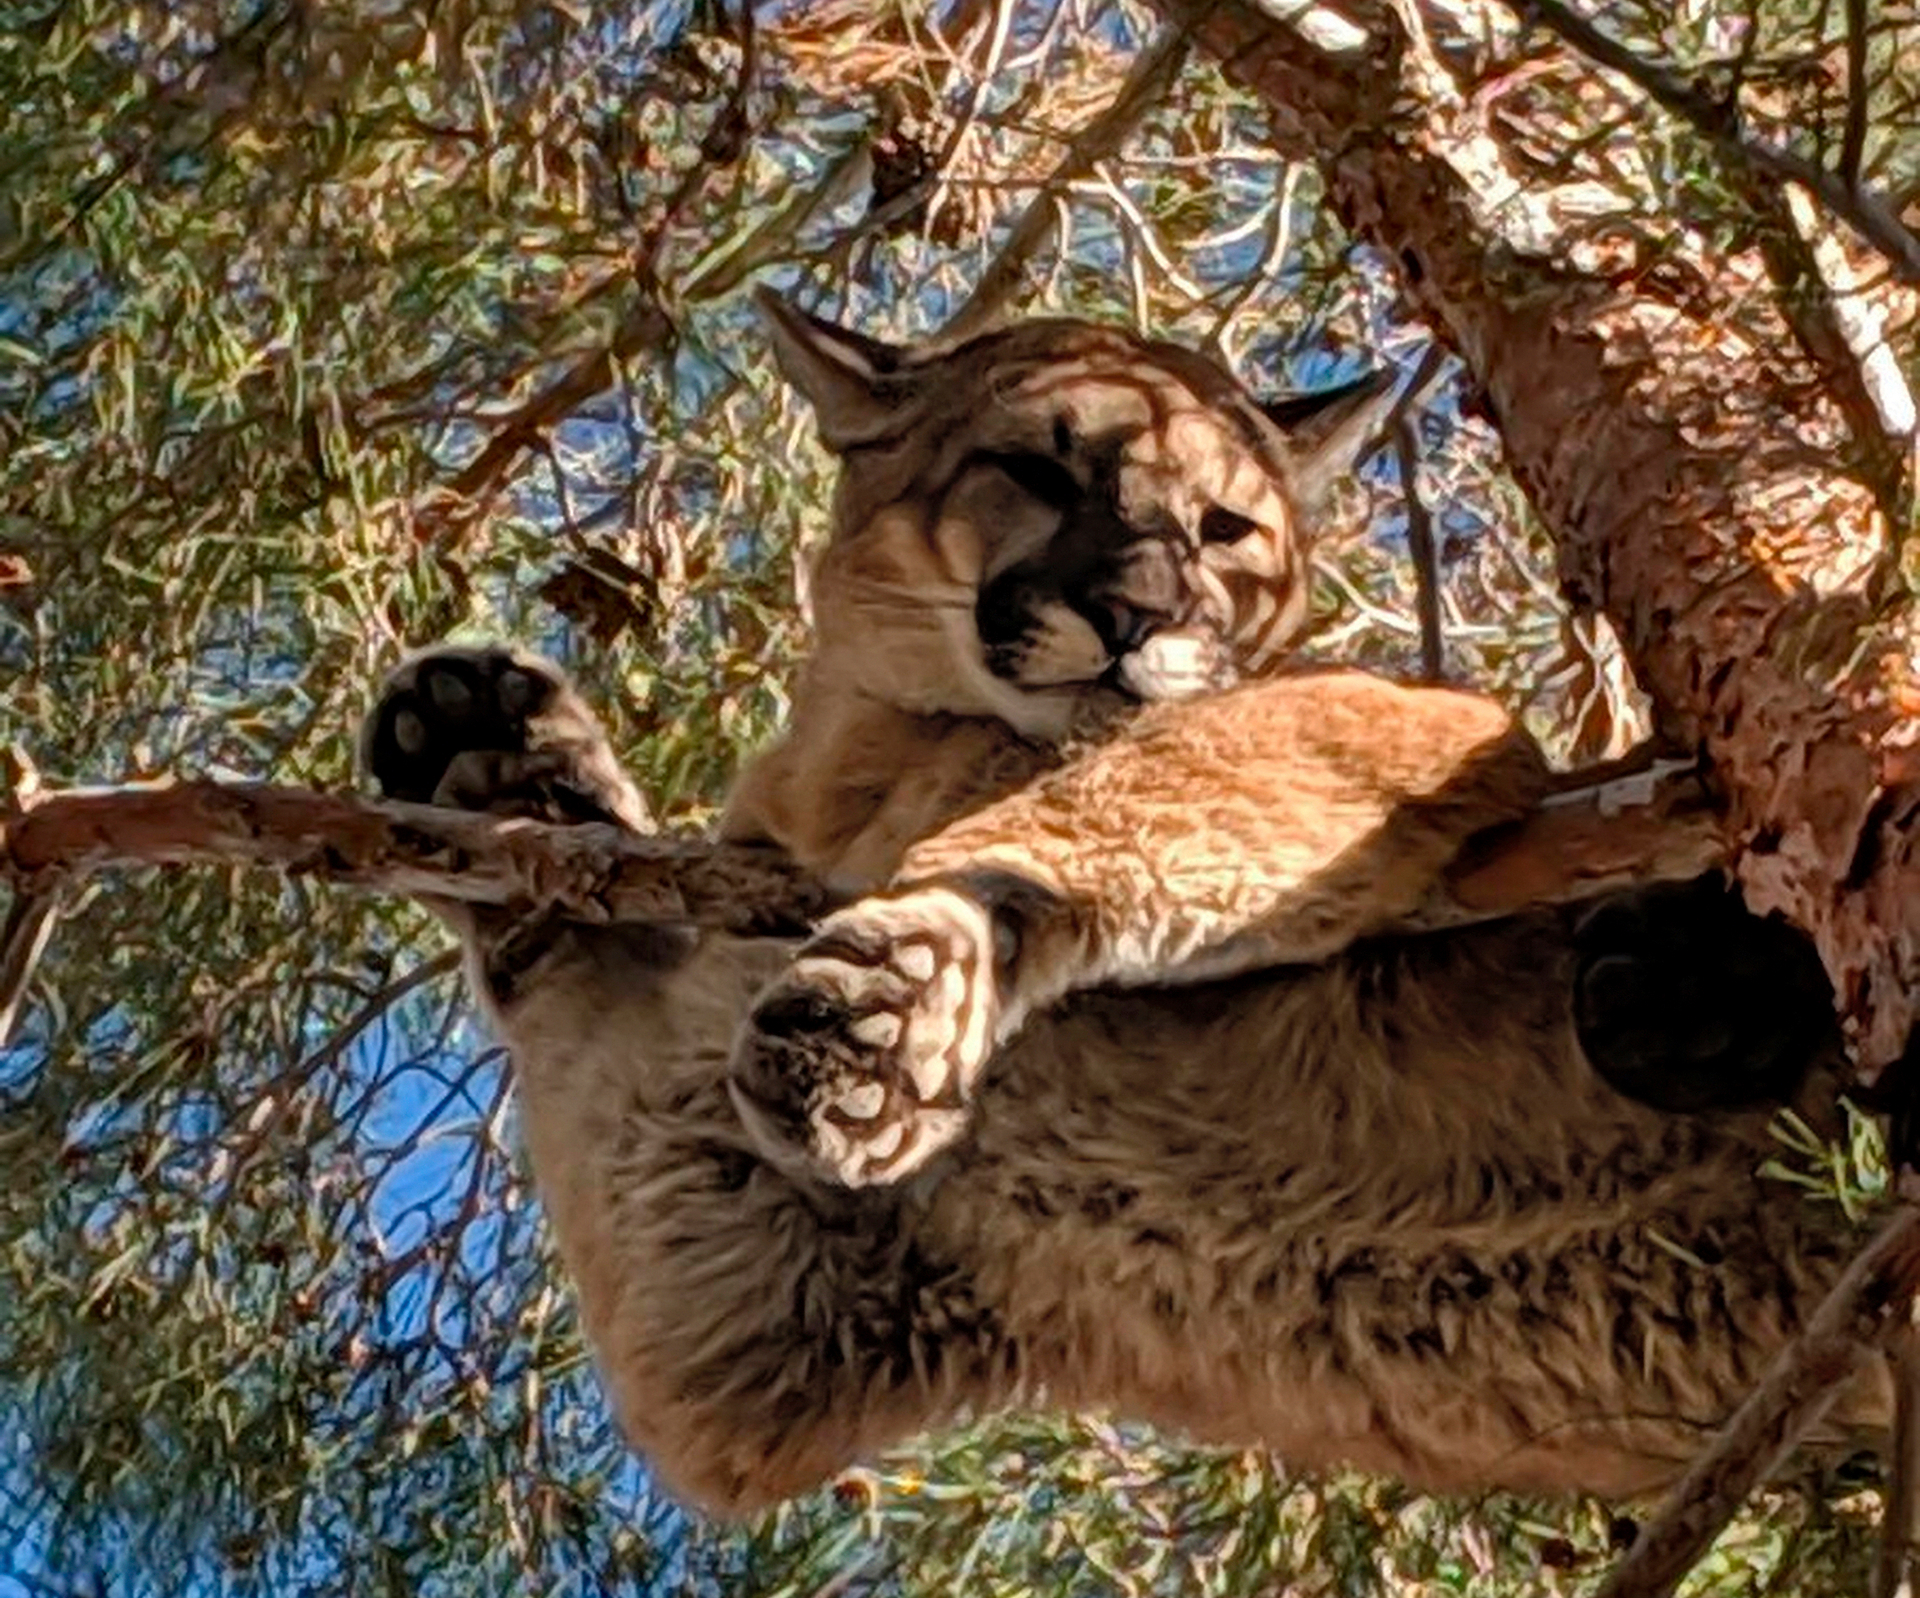 Help! There's a (big) cat stuck in a tree